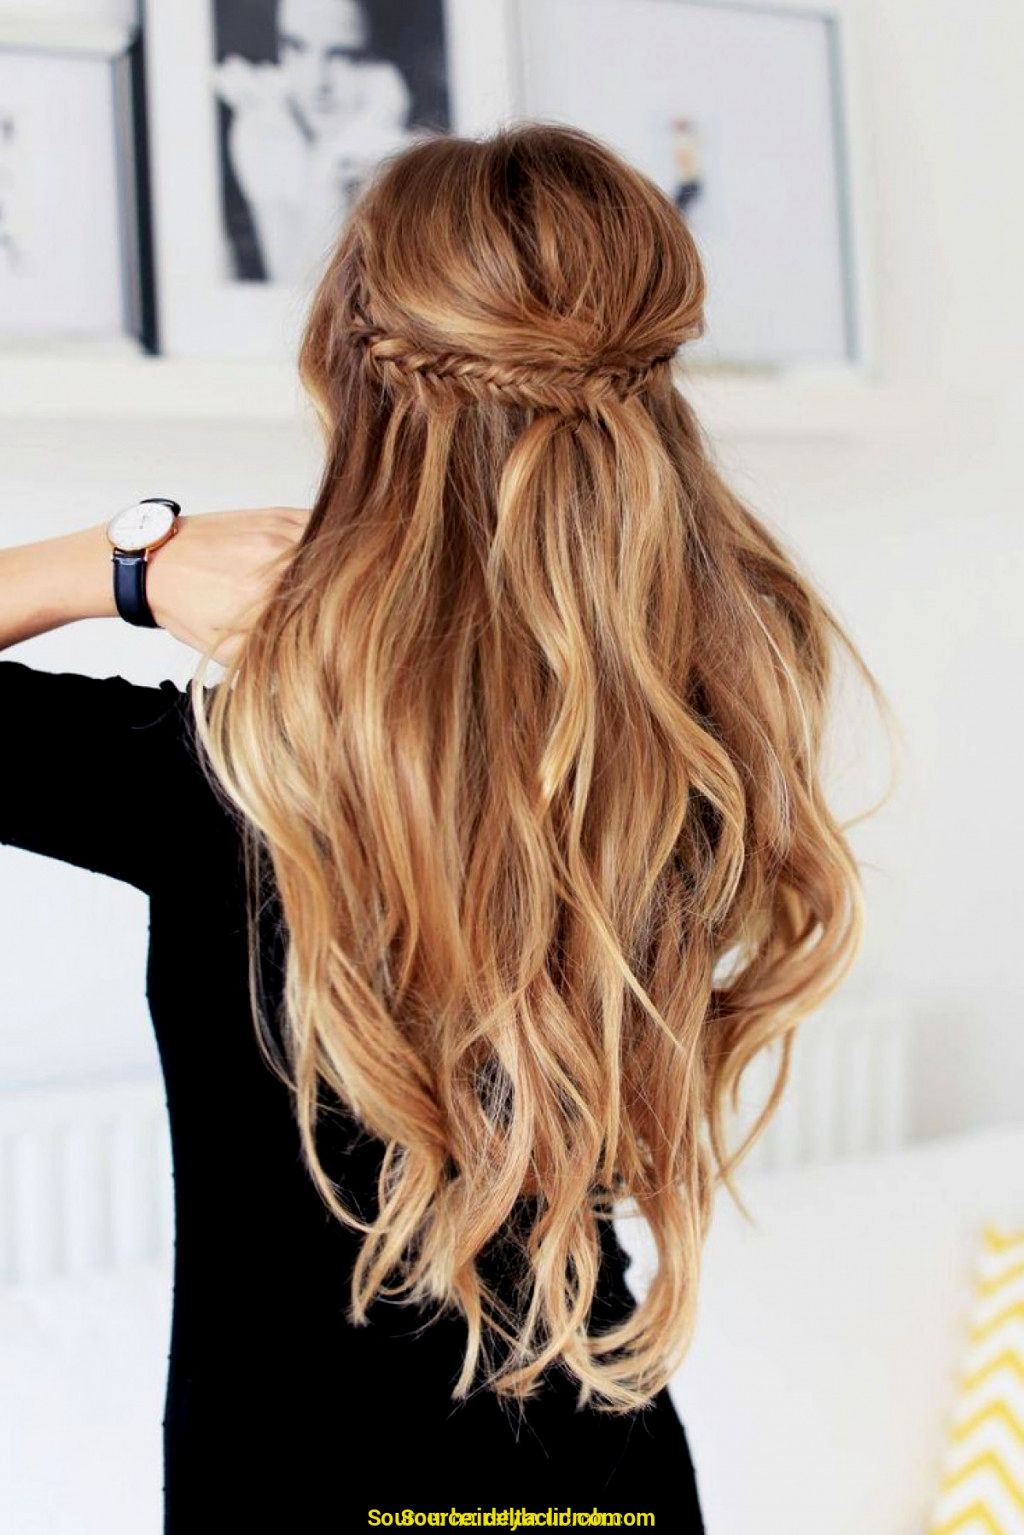 finest hairstyles stock gallery-Terrific Hairstyles Upstyle Models